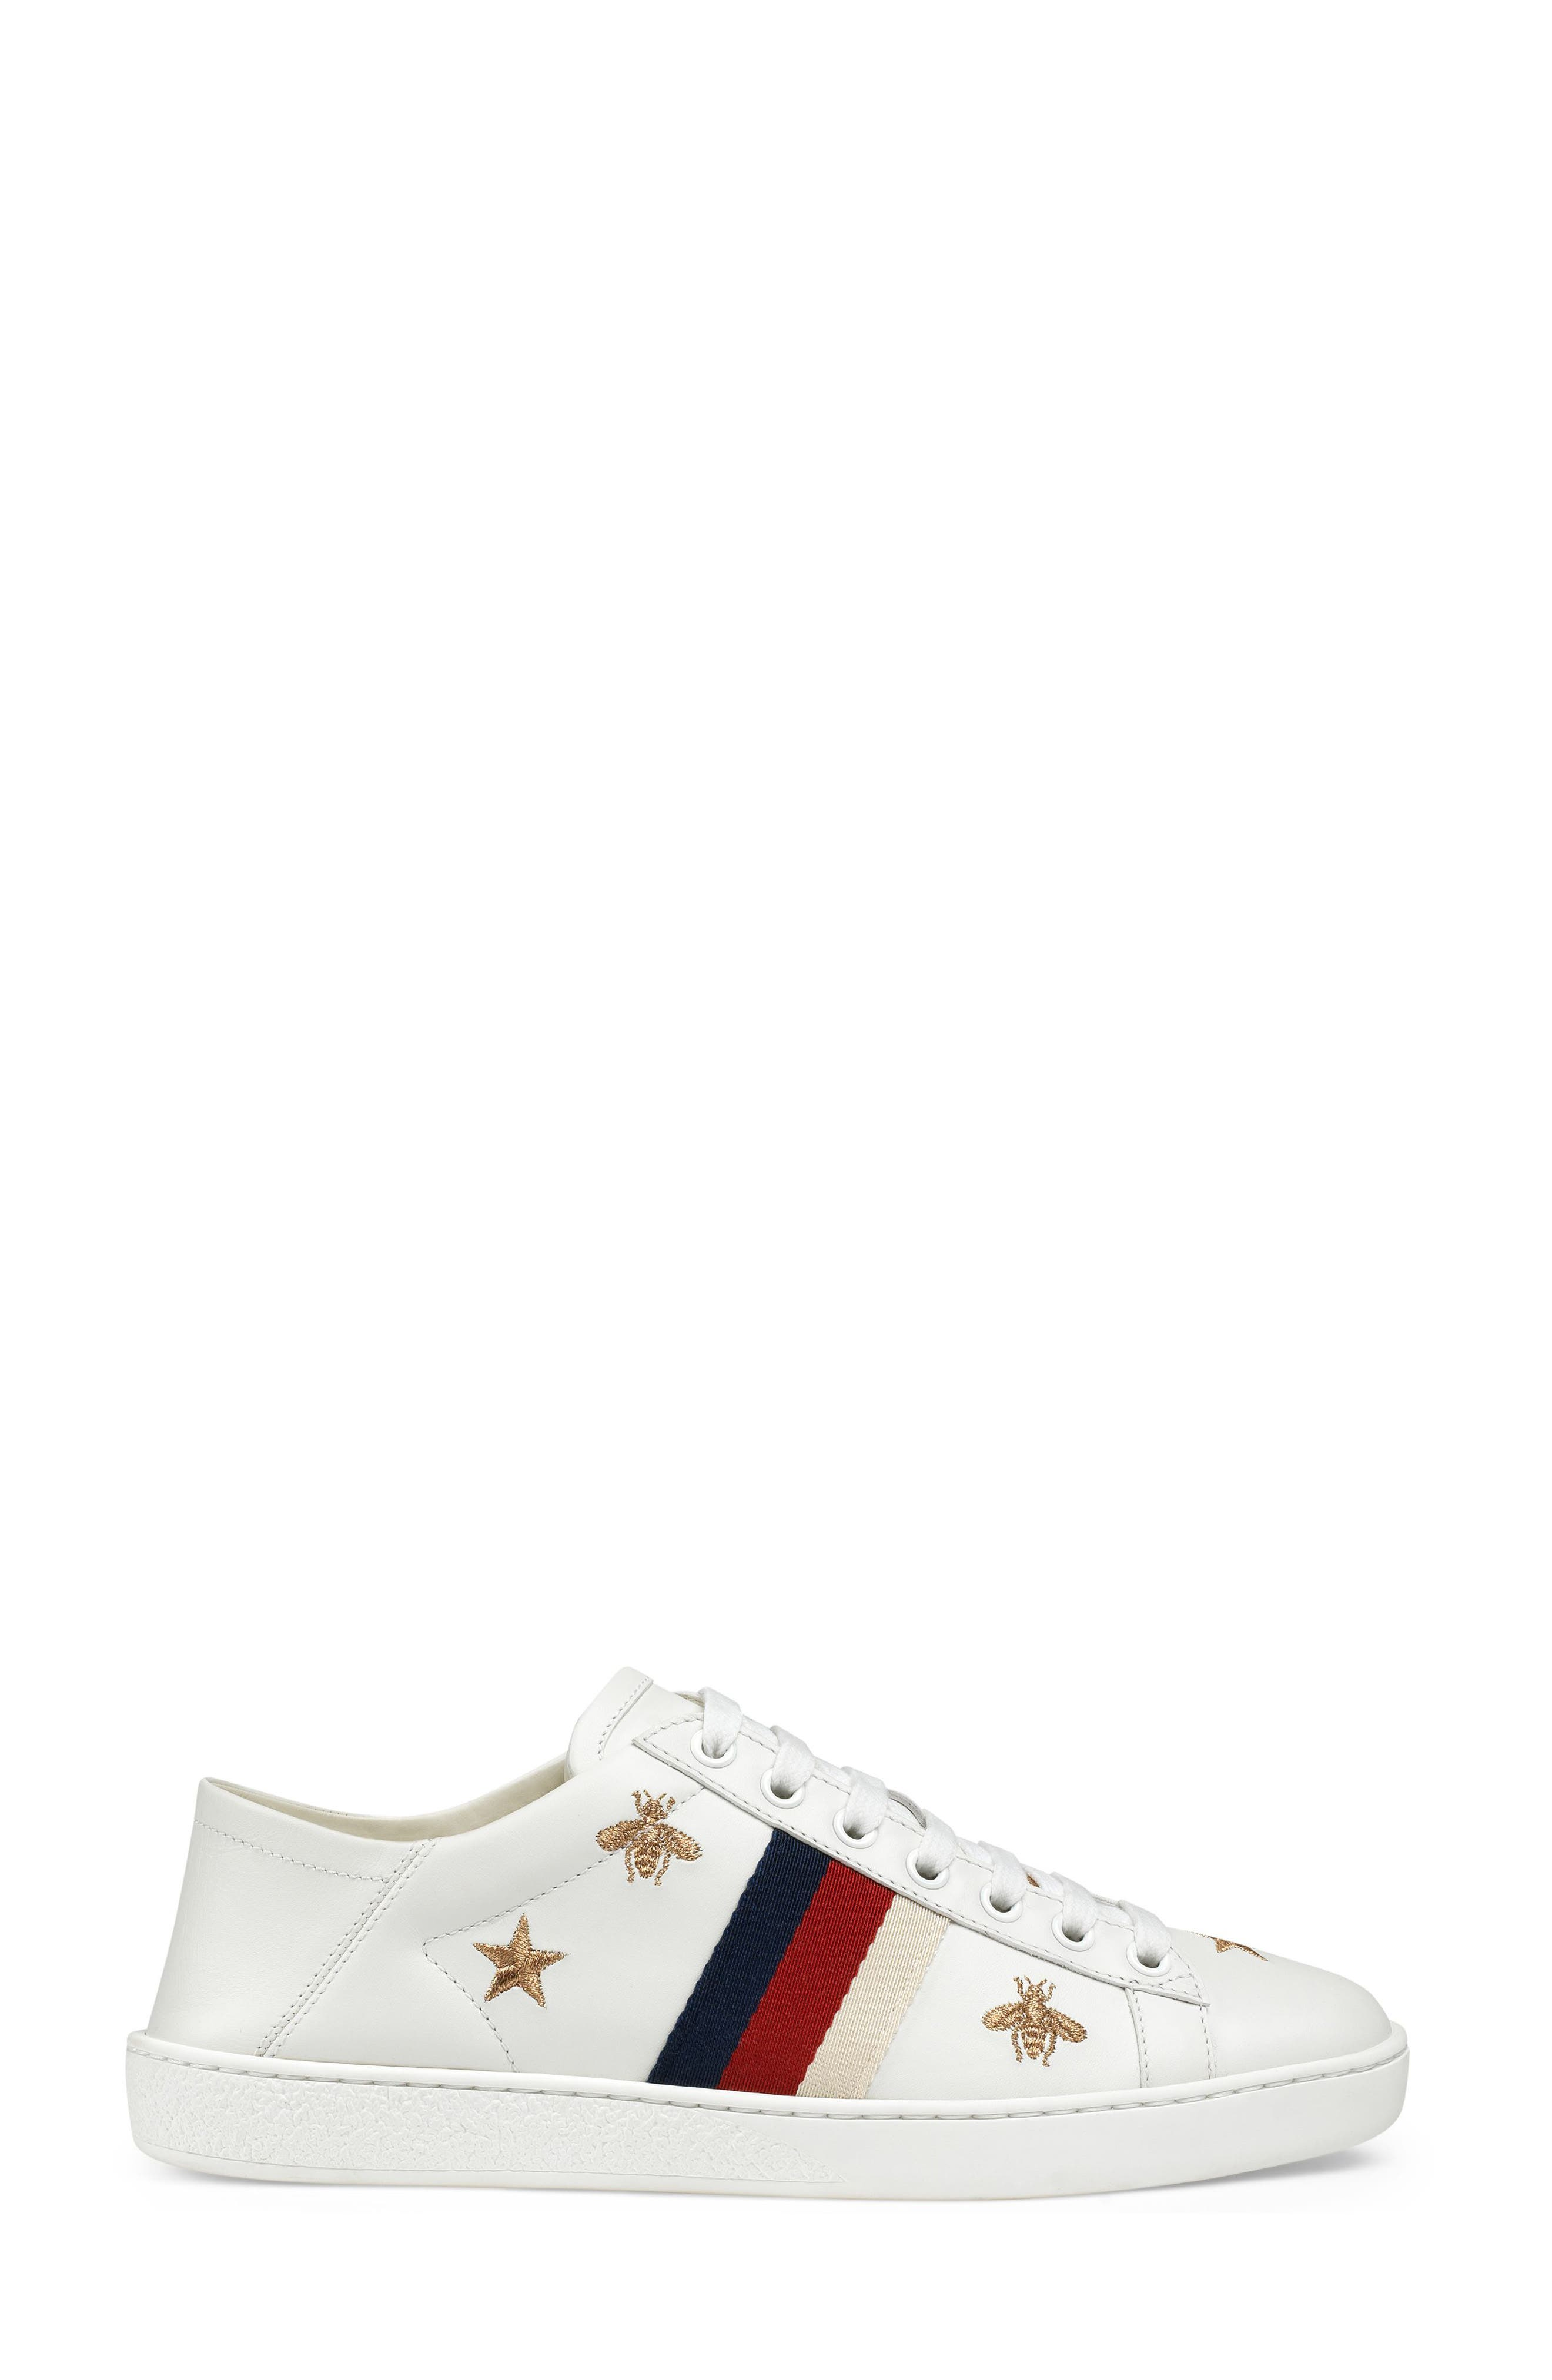 New Ace Convertible Heel Sneaker,                             Main thumbnail 1, color,                             WHITE/ BEE PRINT